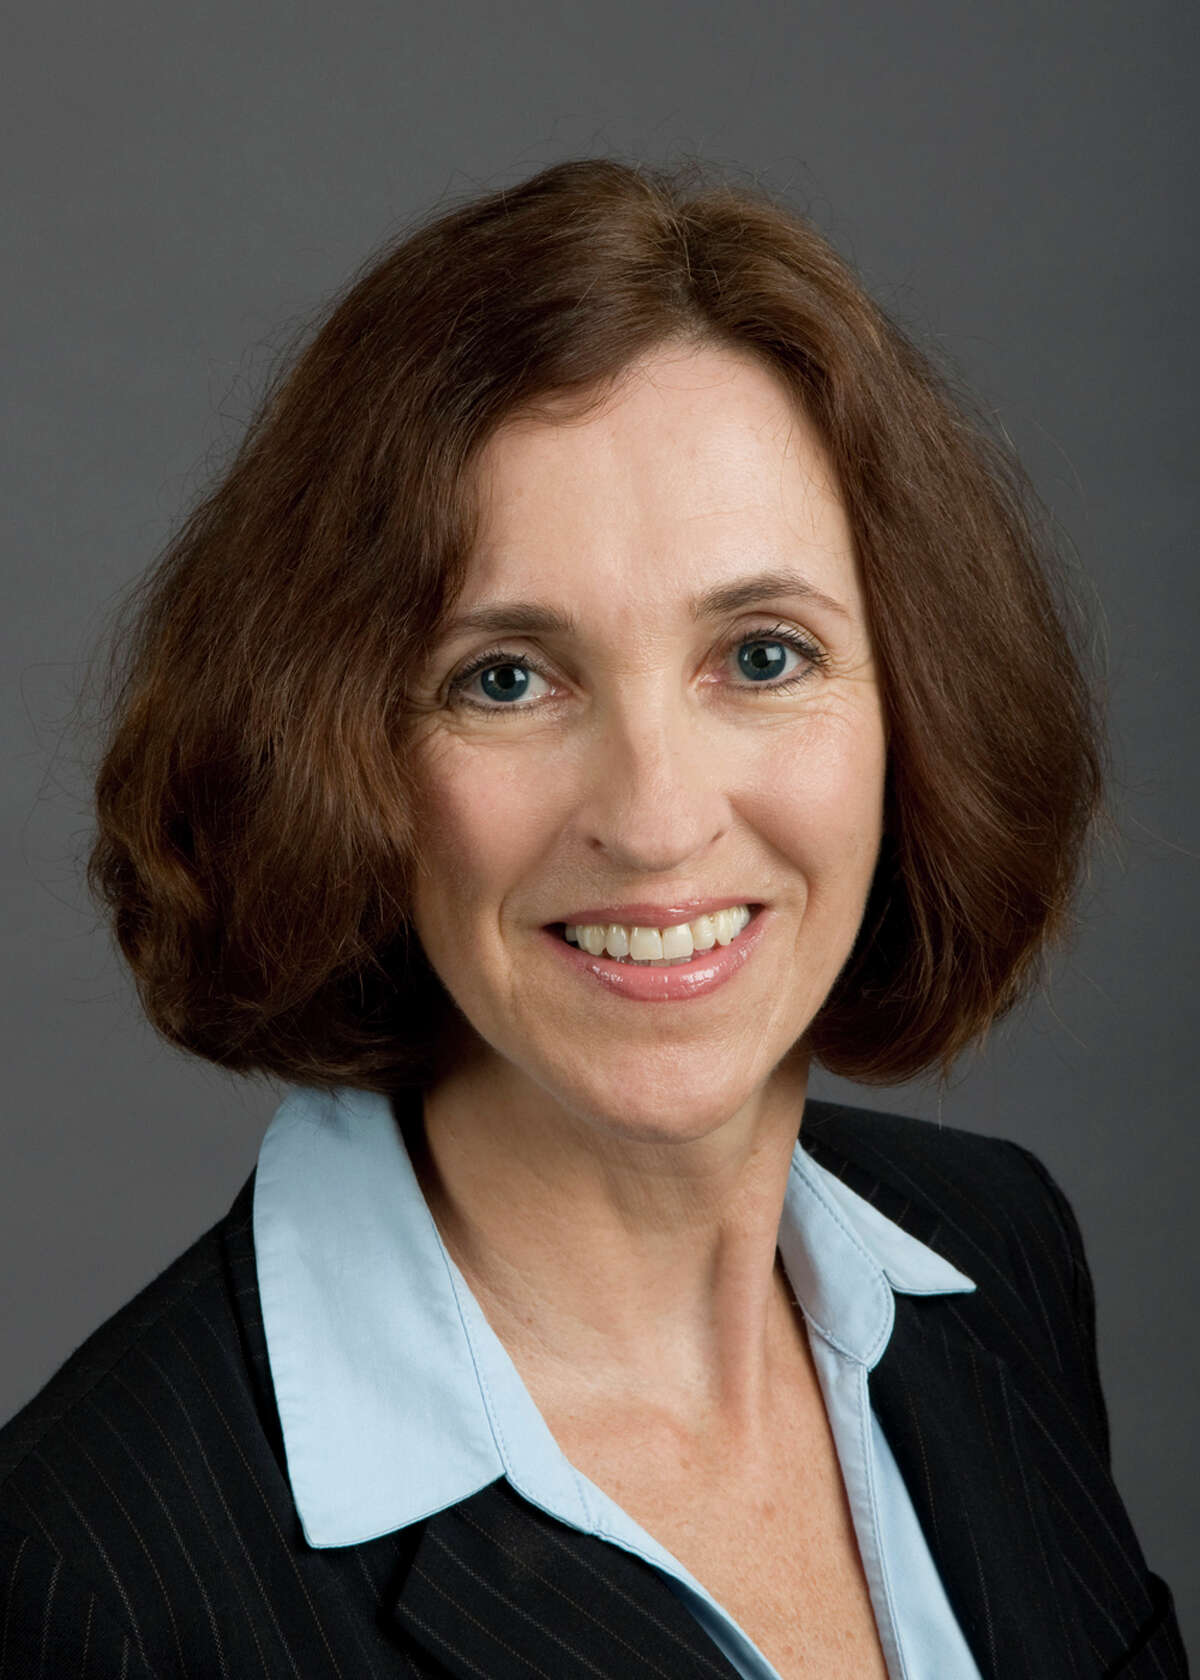 Rebecca Bell-Metereau is a Democratic candidate for the State Board of Education, District 5.